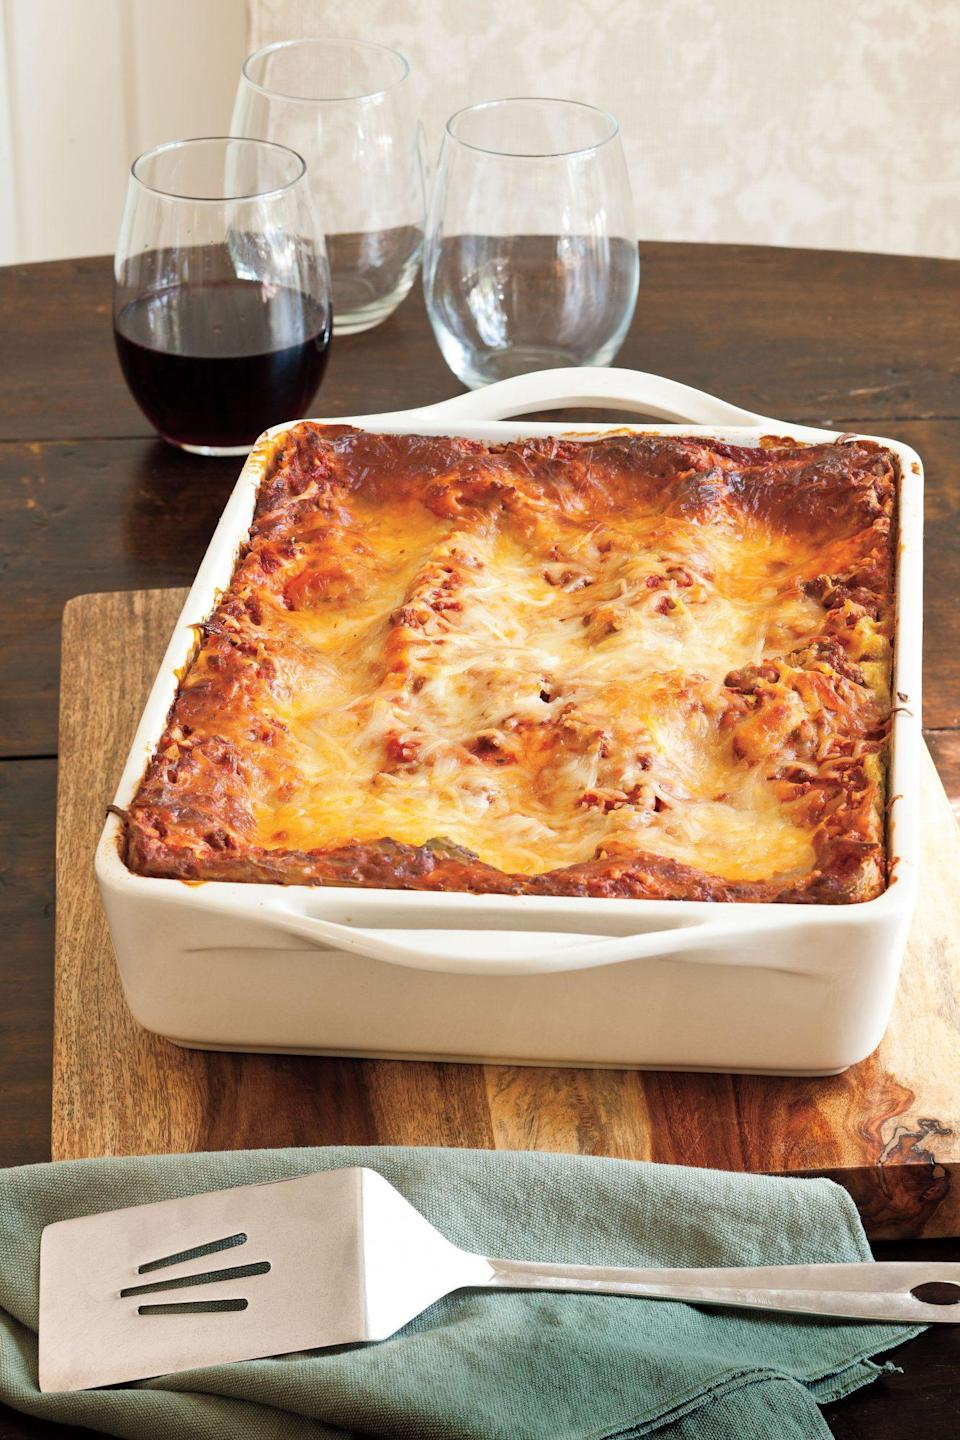 """<p><strong>Recipe: <a href=""""https://www.southernliving.com/syndication/vanessas-make-ahead-beefy-lasagna"""" rel=""""nofollow noopener"""" target=""""_blank"""" data-ylk=""""slk:Vanessa's Make-Ahead Beefy Lasagna"""" class=""""link rapid-noclick-resp"""">Vanessa's Make-Ahead Beefy Lasagna</a></strong></p> <p>For many families, lasagna is a Christmas Eve tradition. This year, prep and freeze this classic recipe up to three months in advance.</p>"""